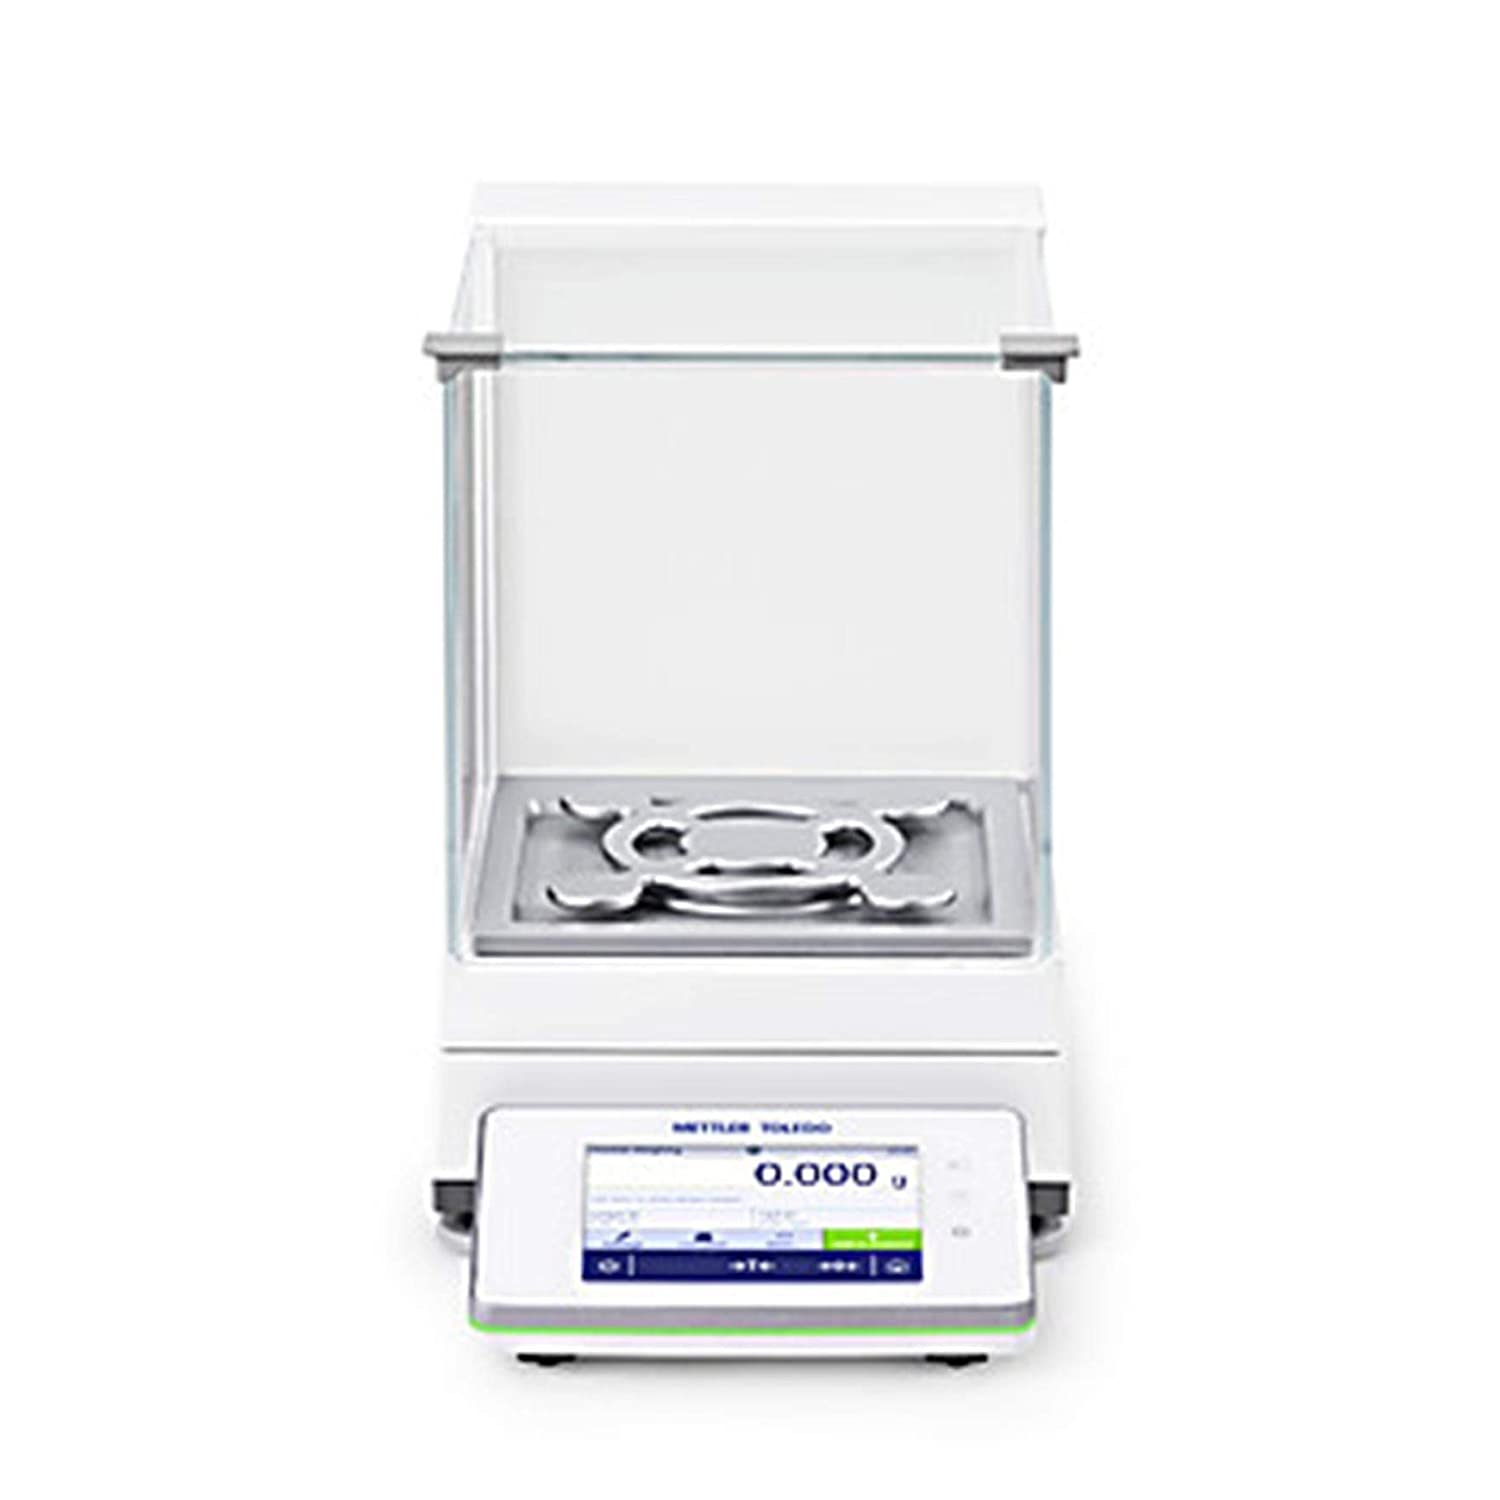 Mettler Toledo 30316497 Model Bargain sale Balan Precision XSR603S Excellence Selling and selling